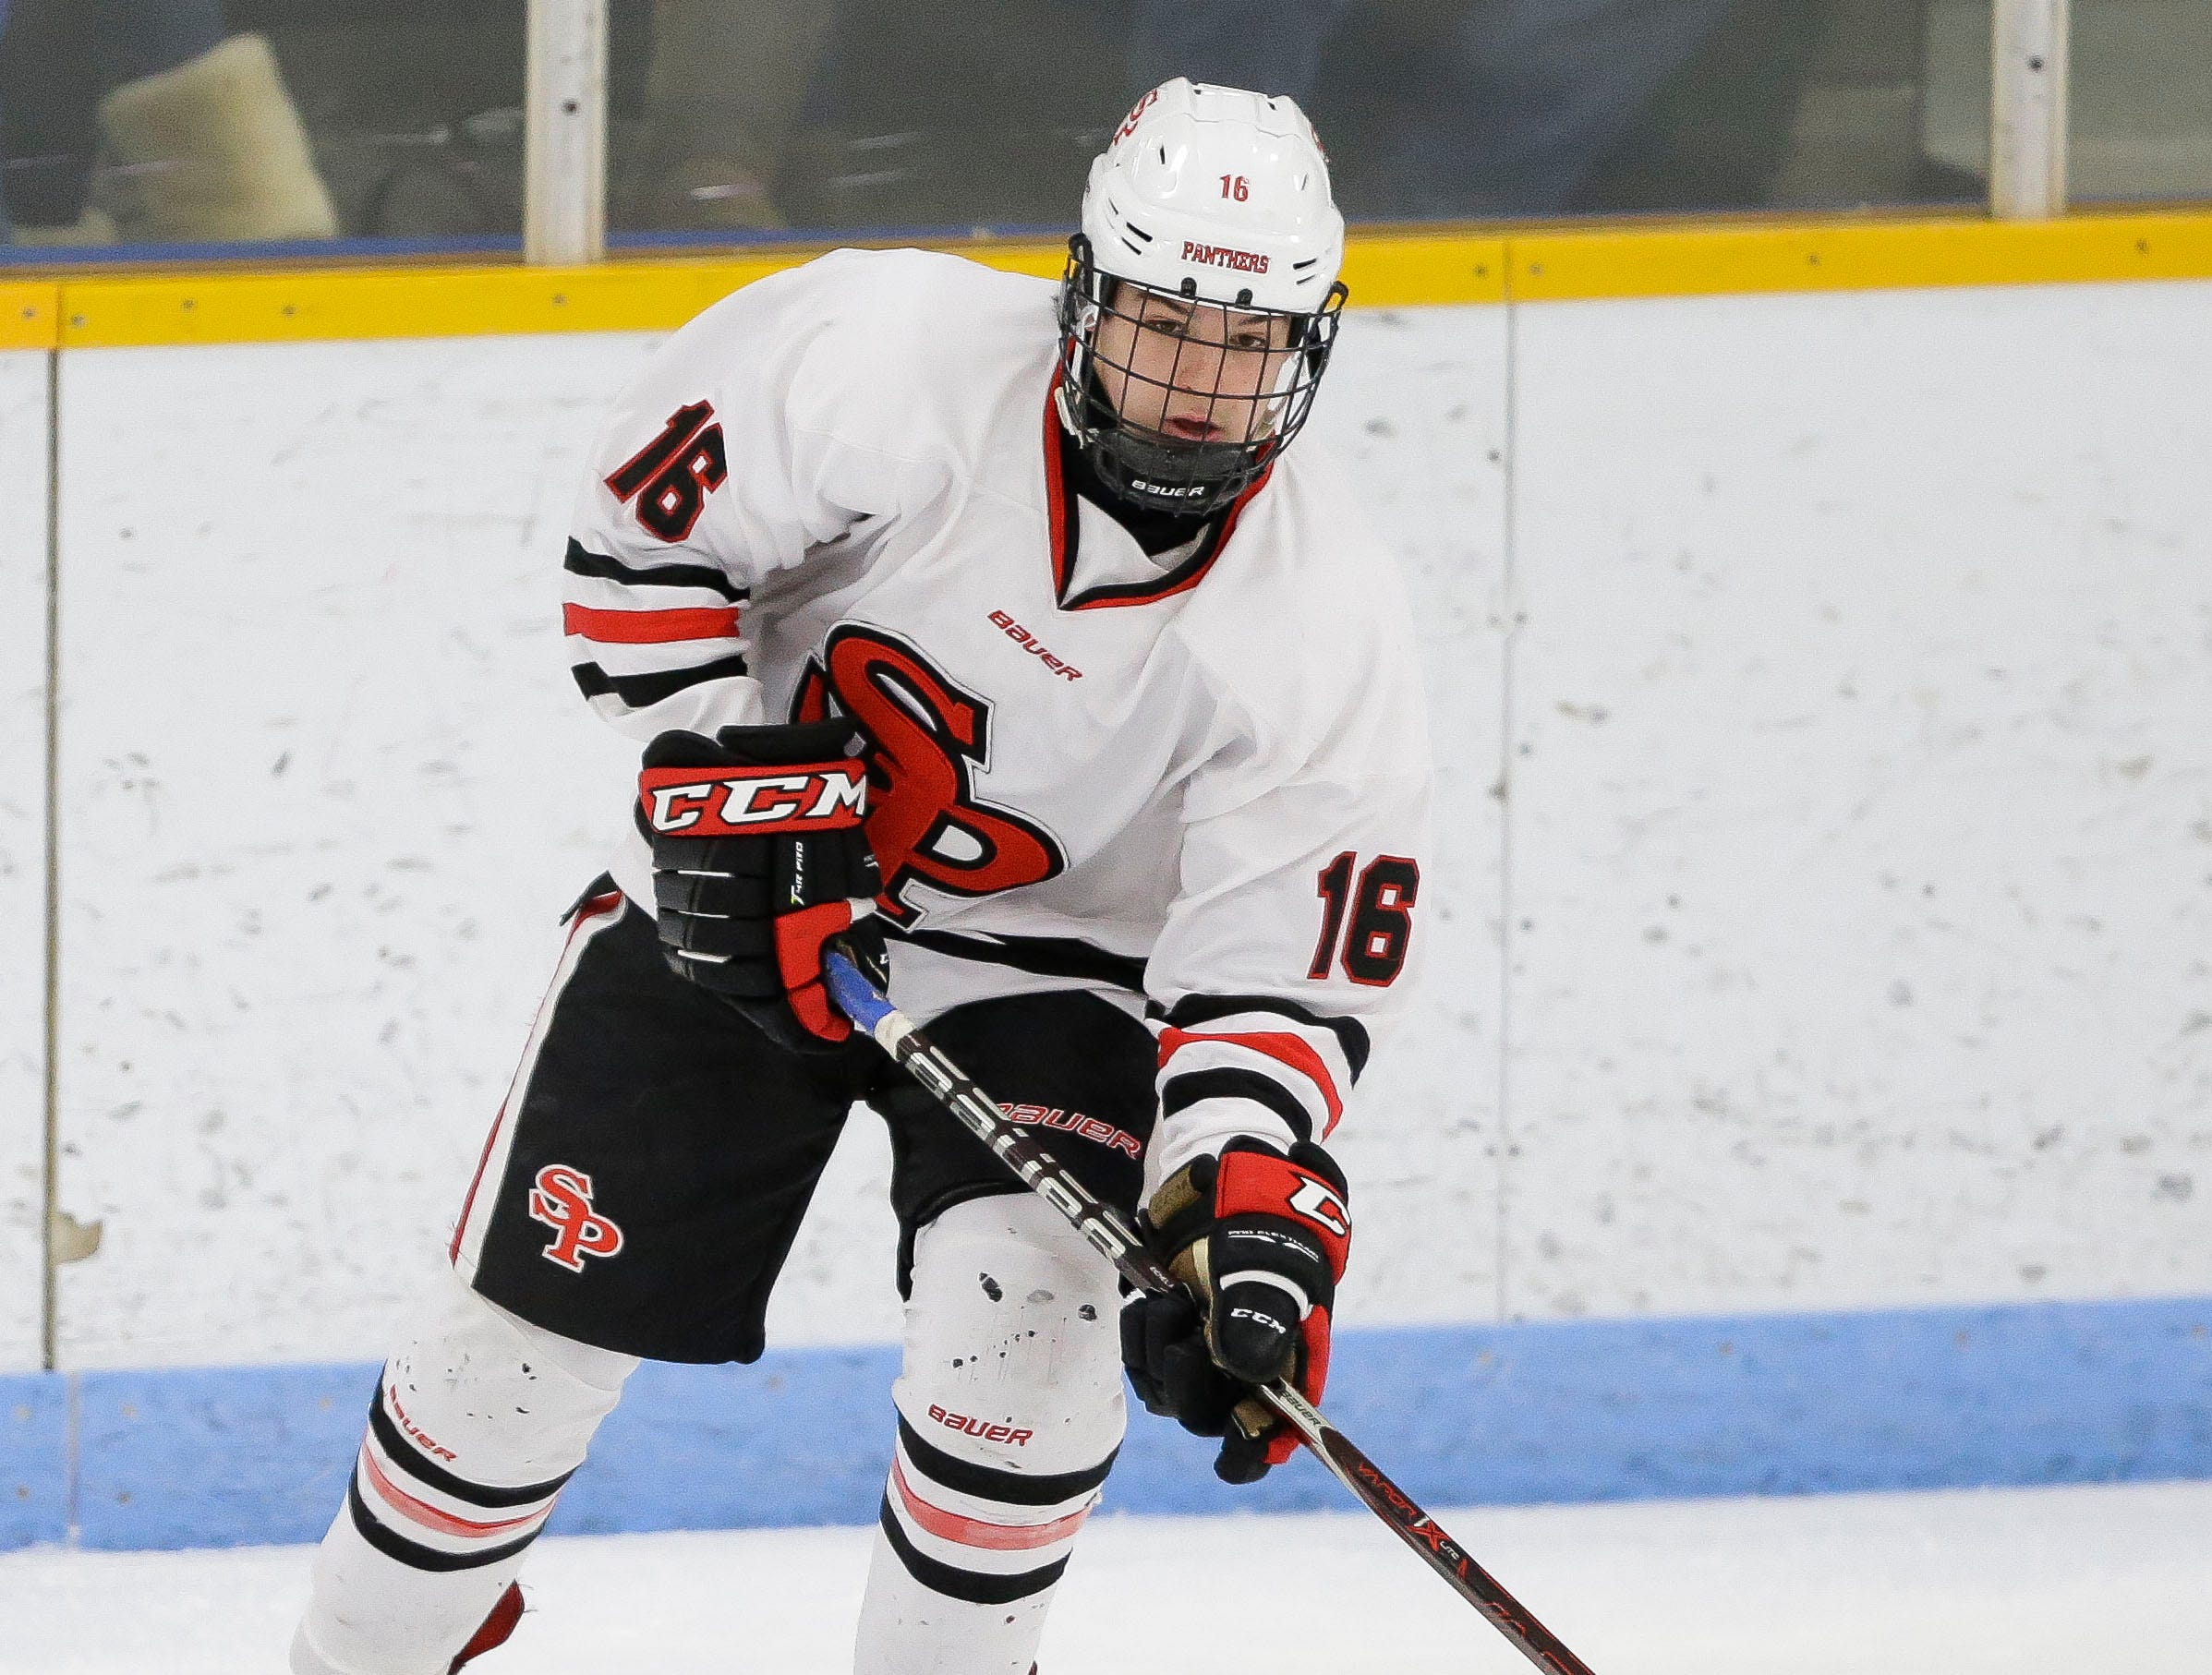 SPASH's Nick Norrgran (16) passes the puck against Verona on Saturday, January 26, 2019, at K.B. Willett Ice Arena in Stevens Point, Wis. Tork Mason/USA TODAY NETWORK-Wisconsin